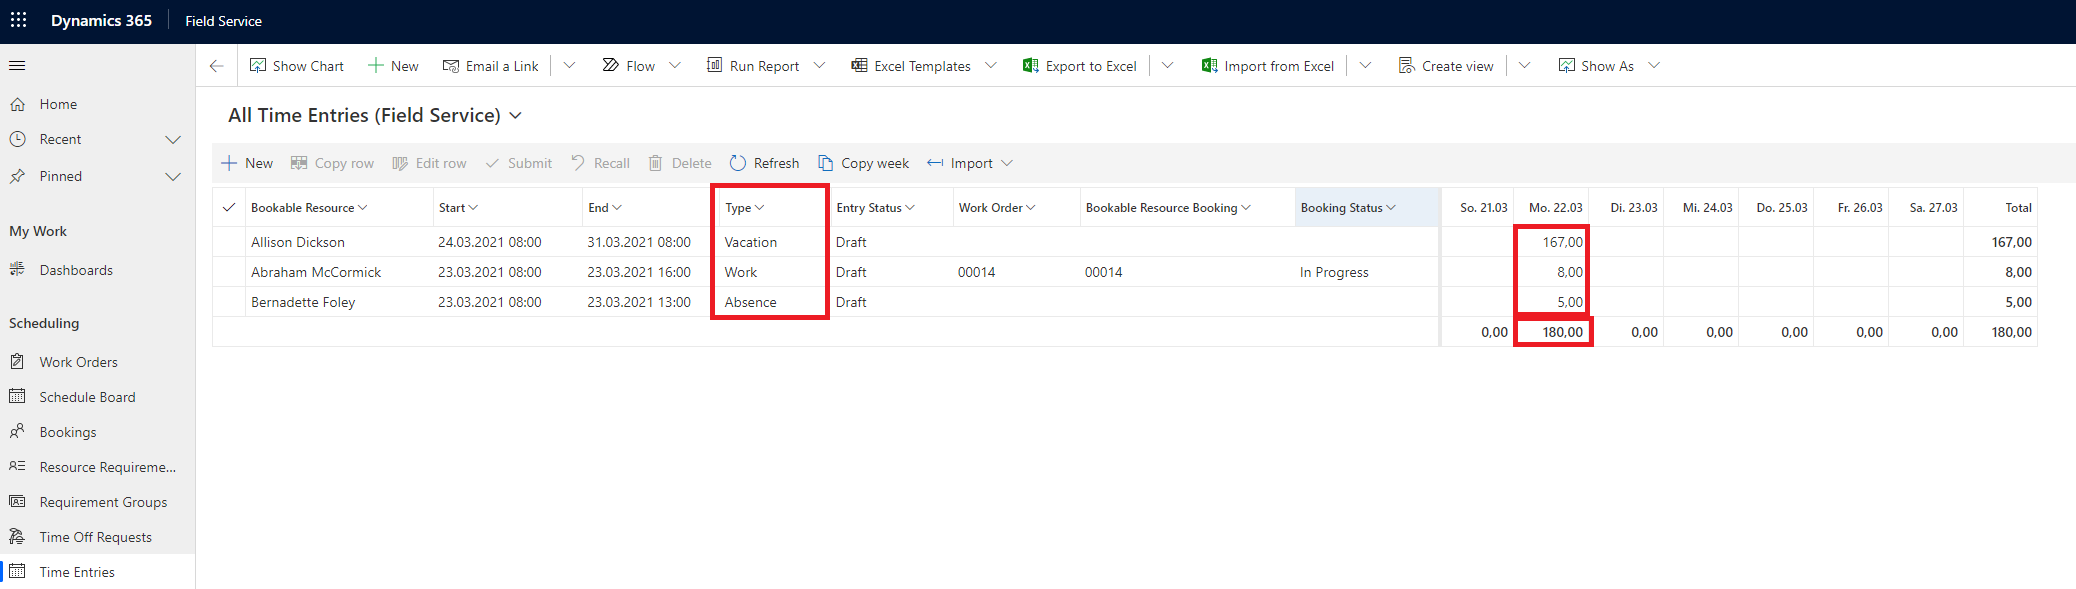 Dynamics 365 Field Service HowTo